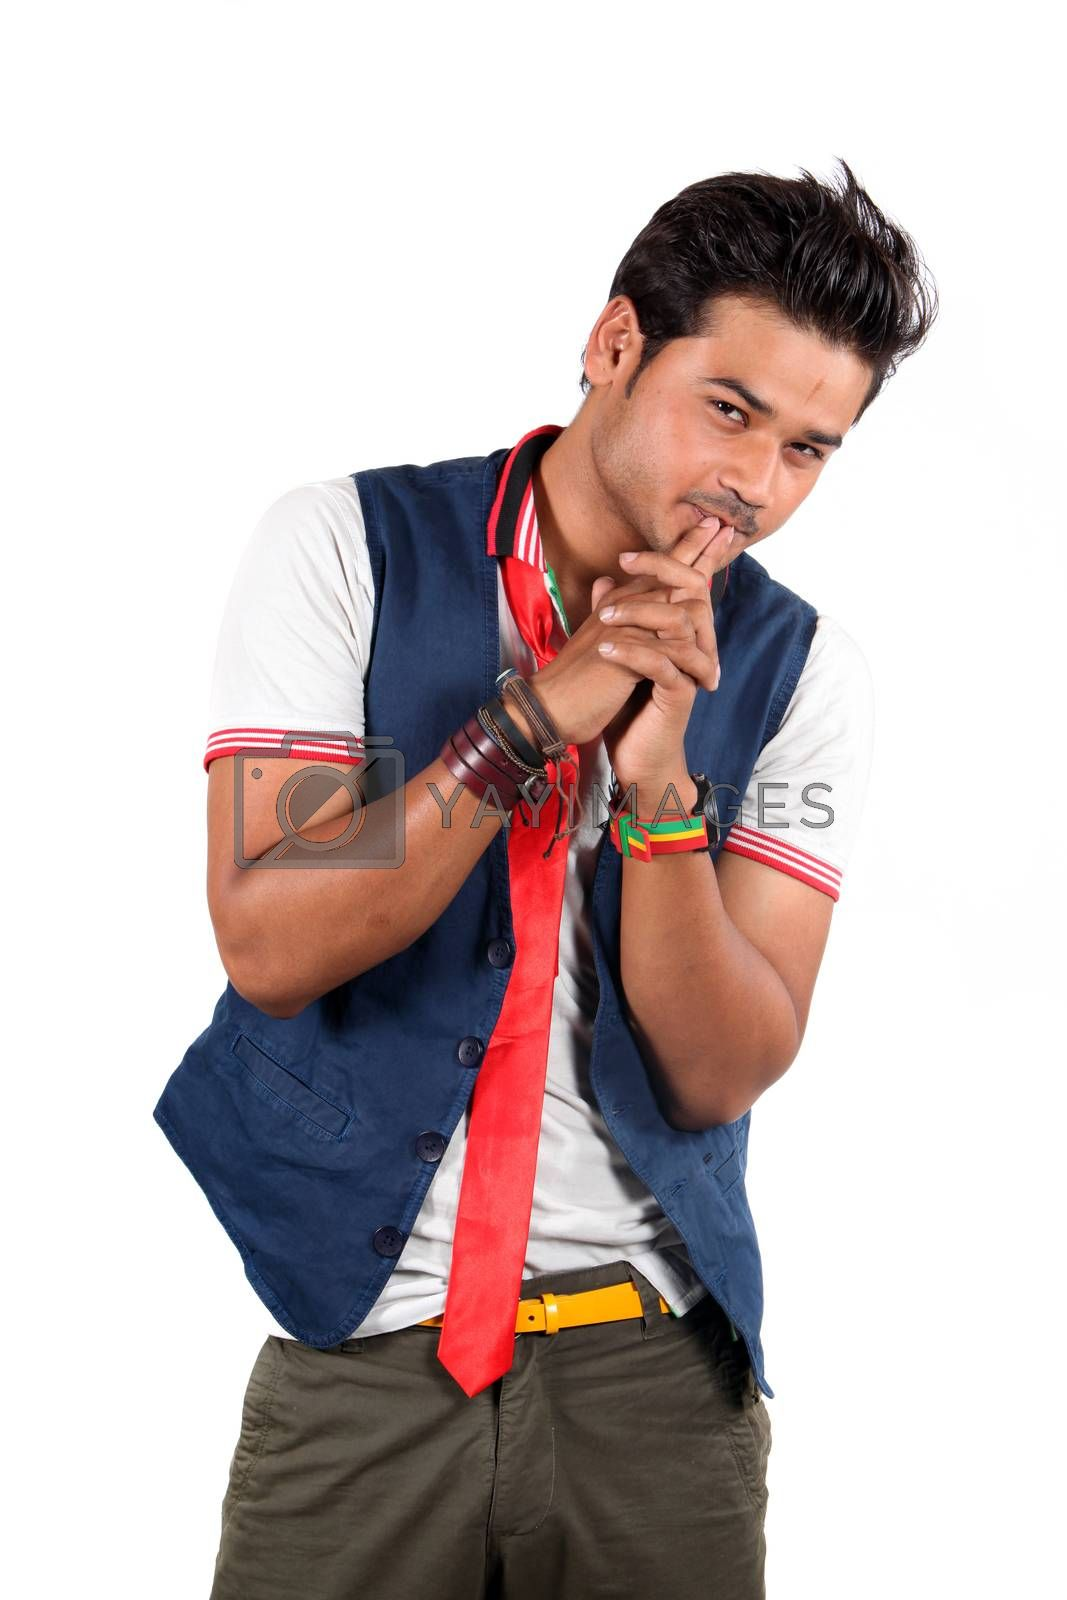 A stylish Indian young male model, on white studio background.